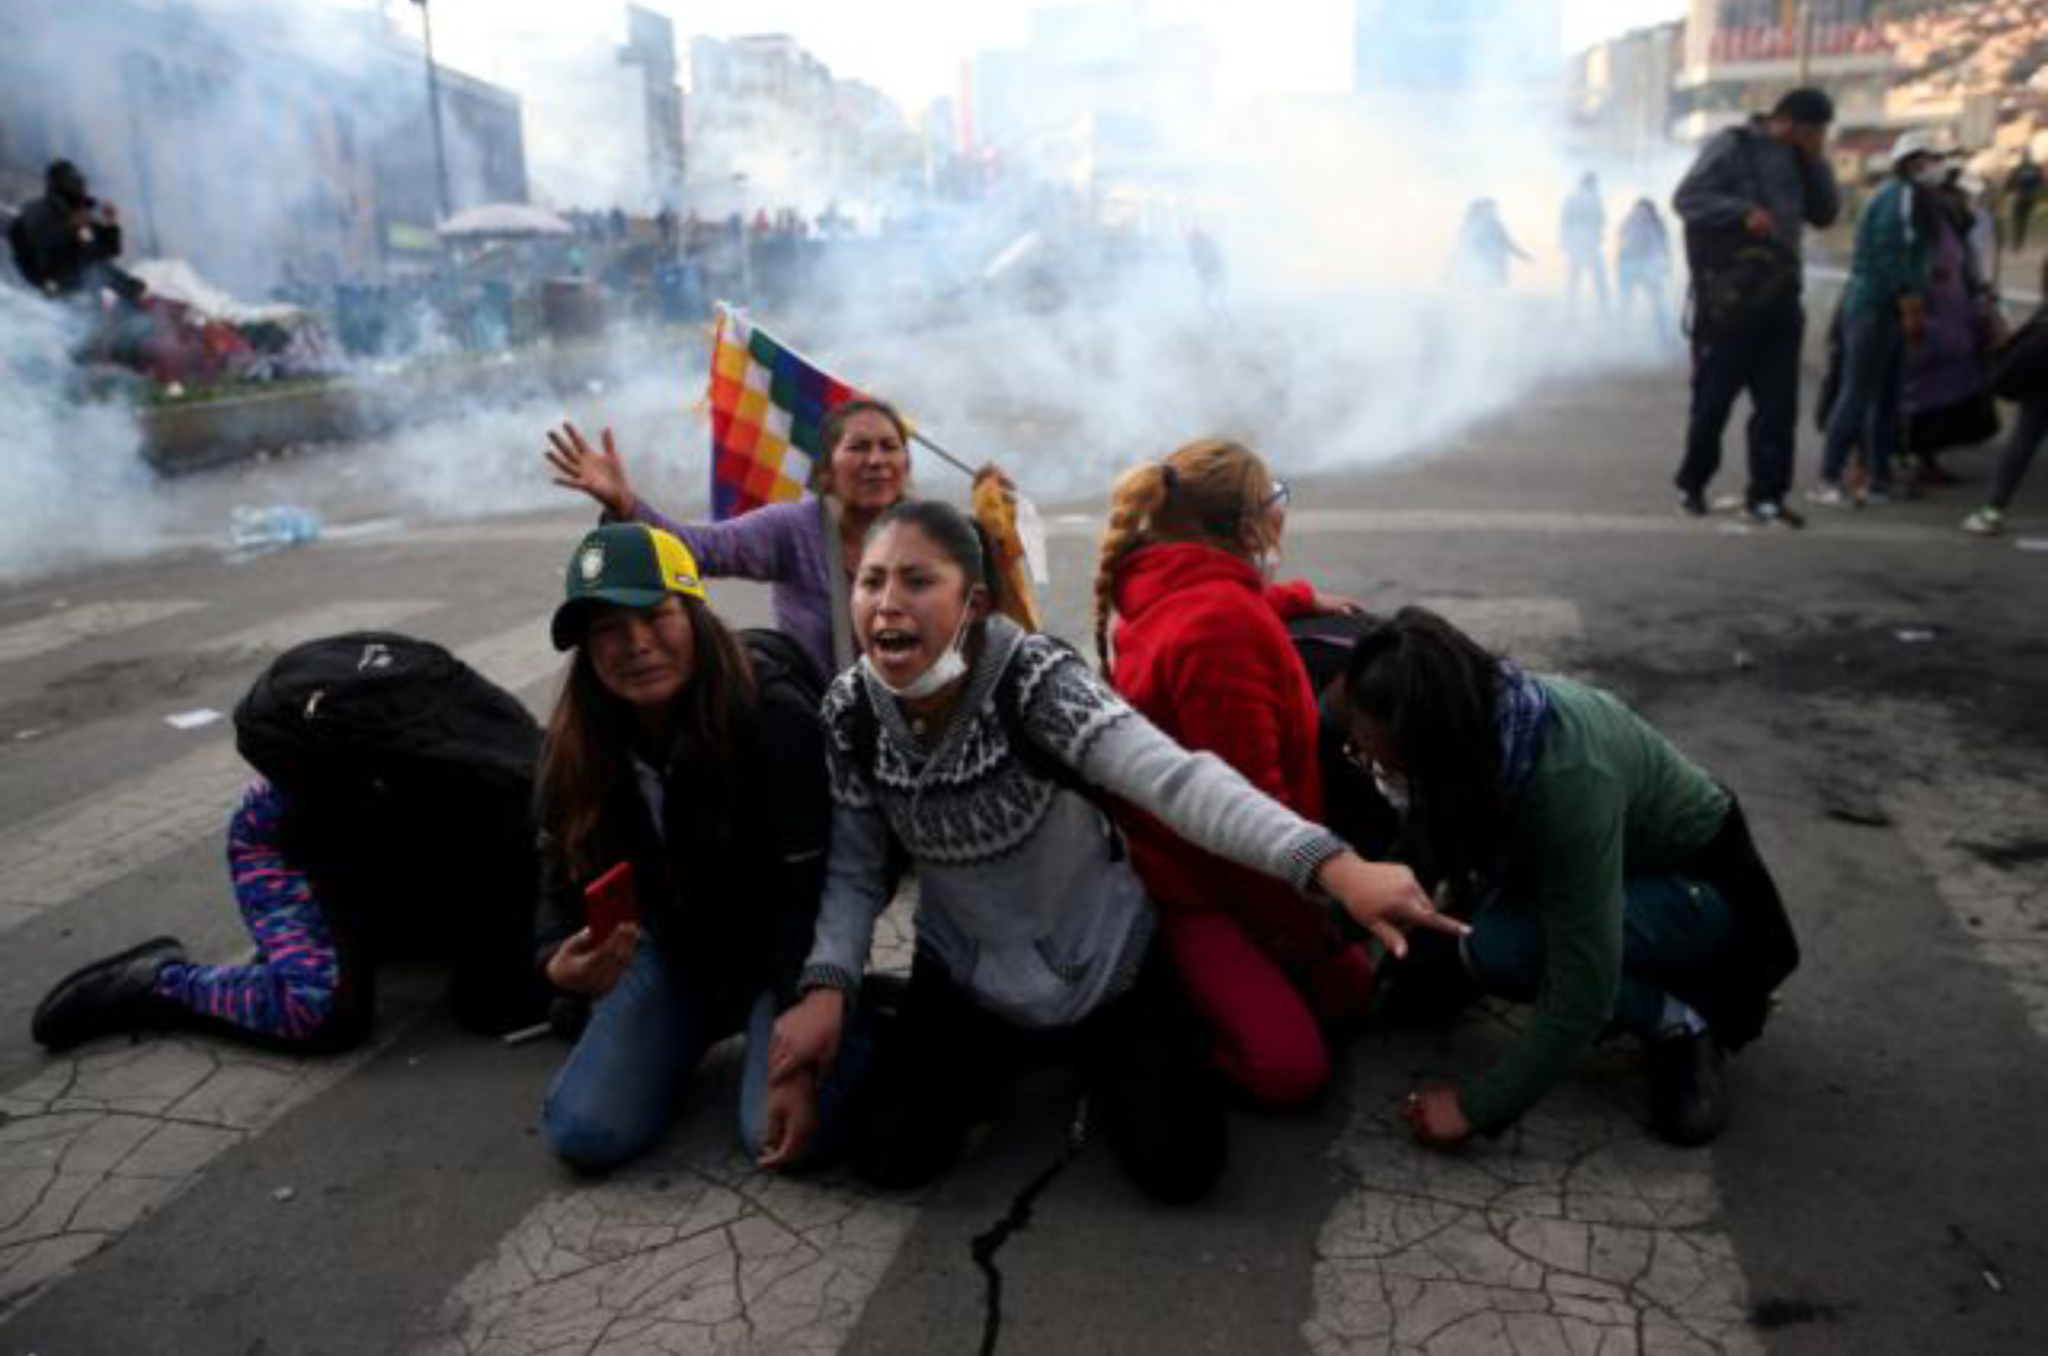 @UN Michelle Bachelet warns Bolivia violence 'could spin out of control @MBachelet @UNhumanRights #StandUp4humanrigths